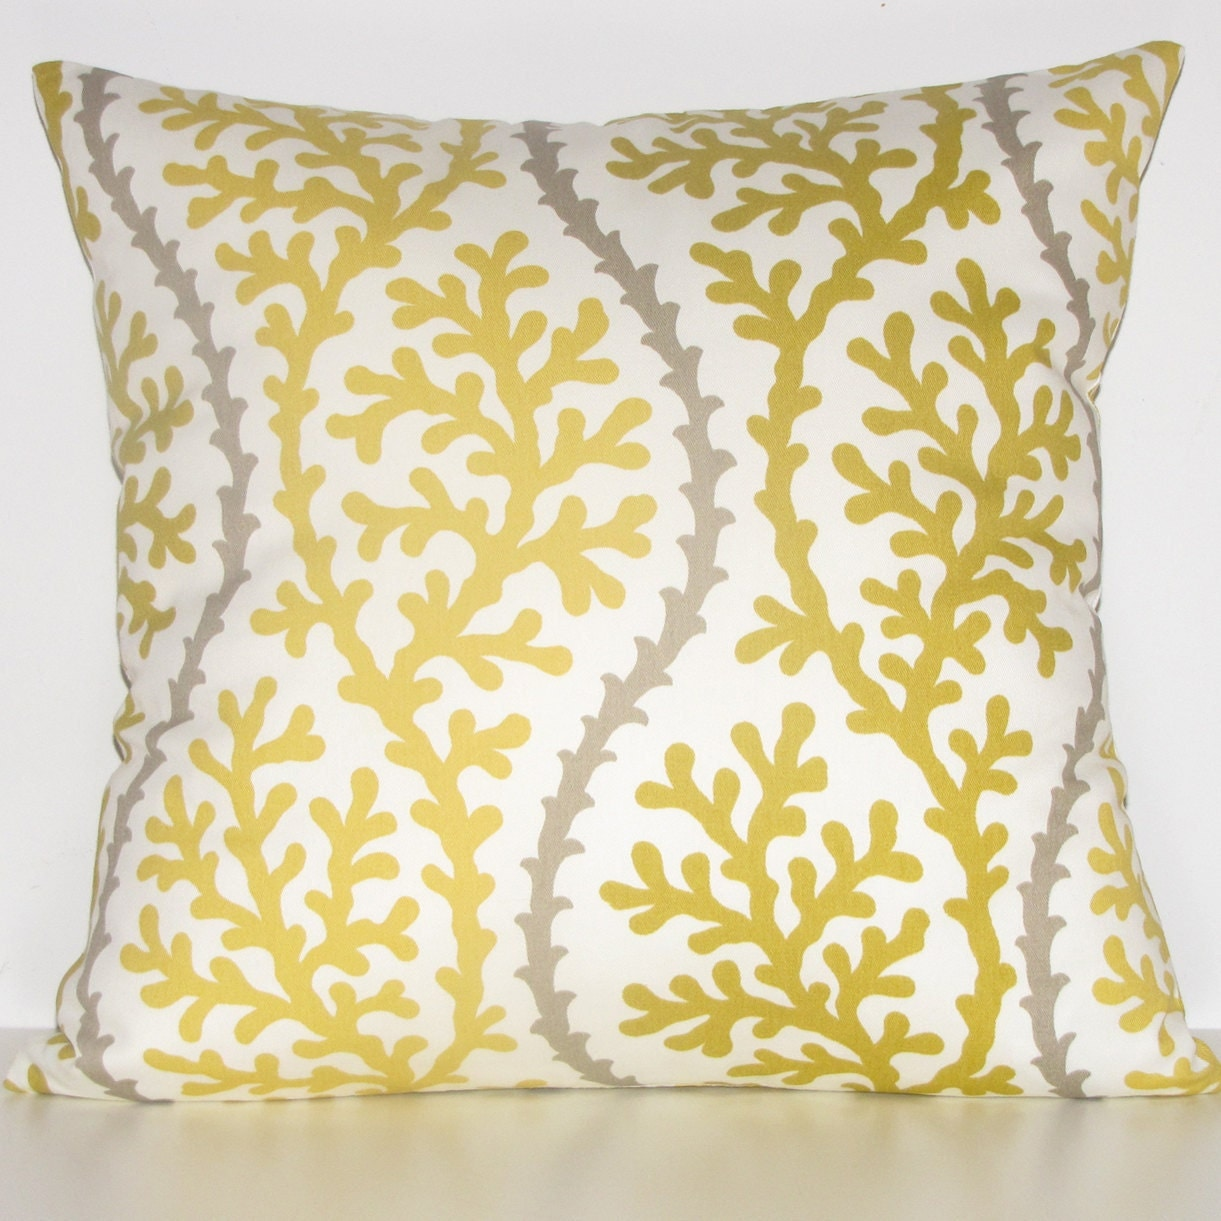 YELLOW coral pillows 16sq FREE SHIPPING